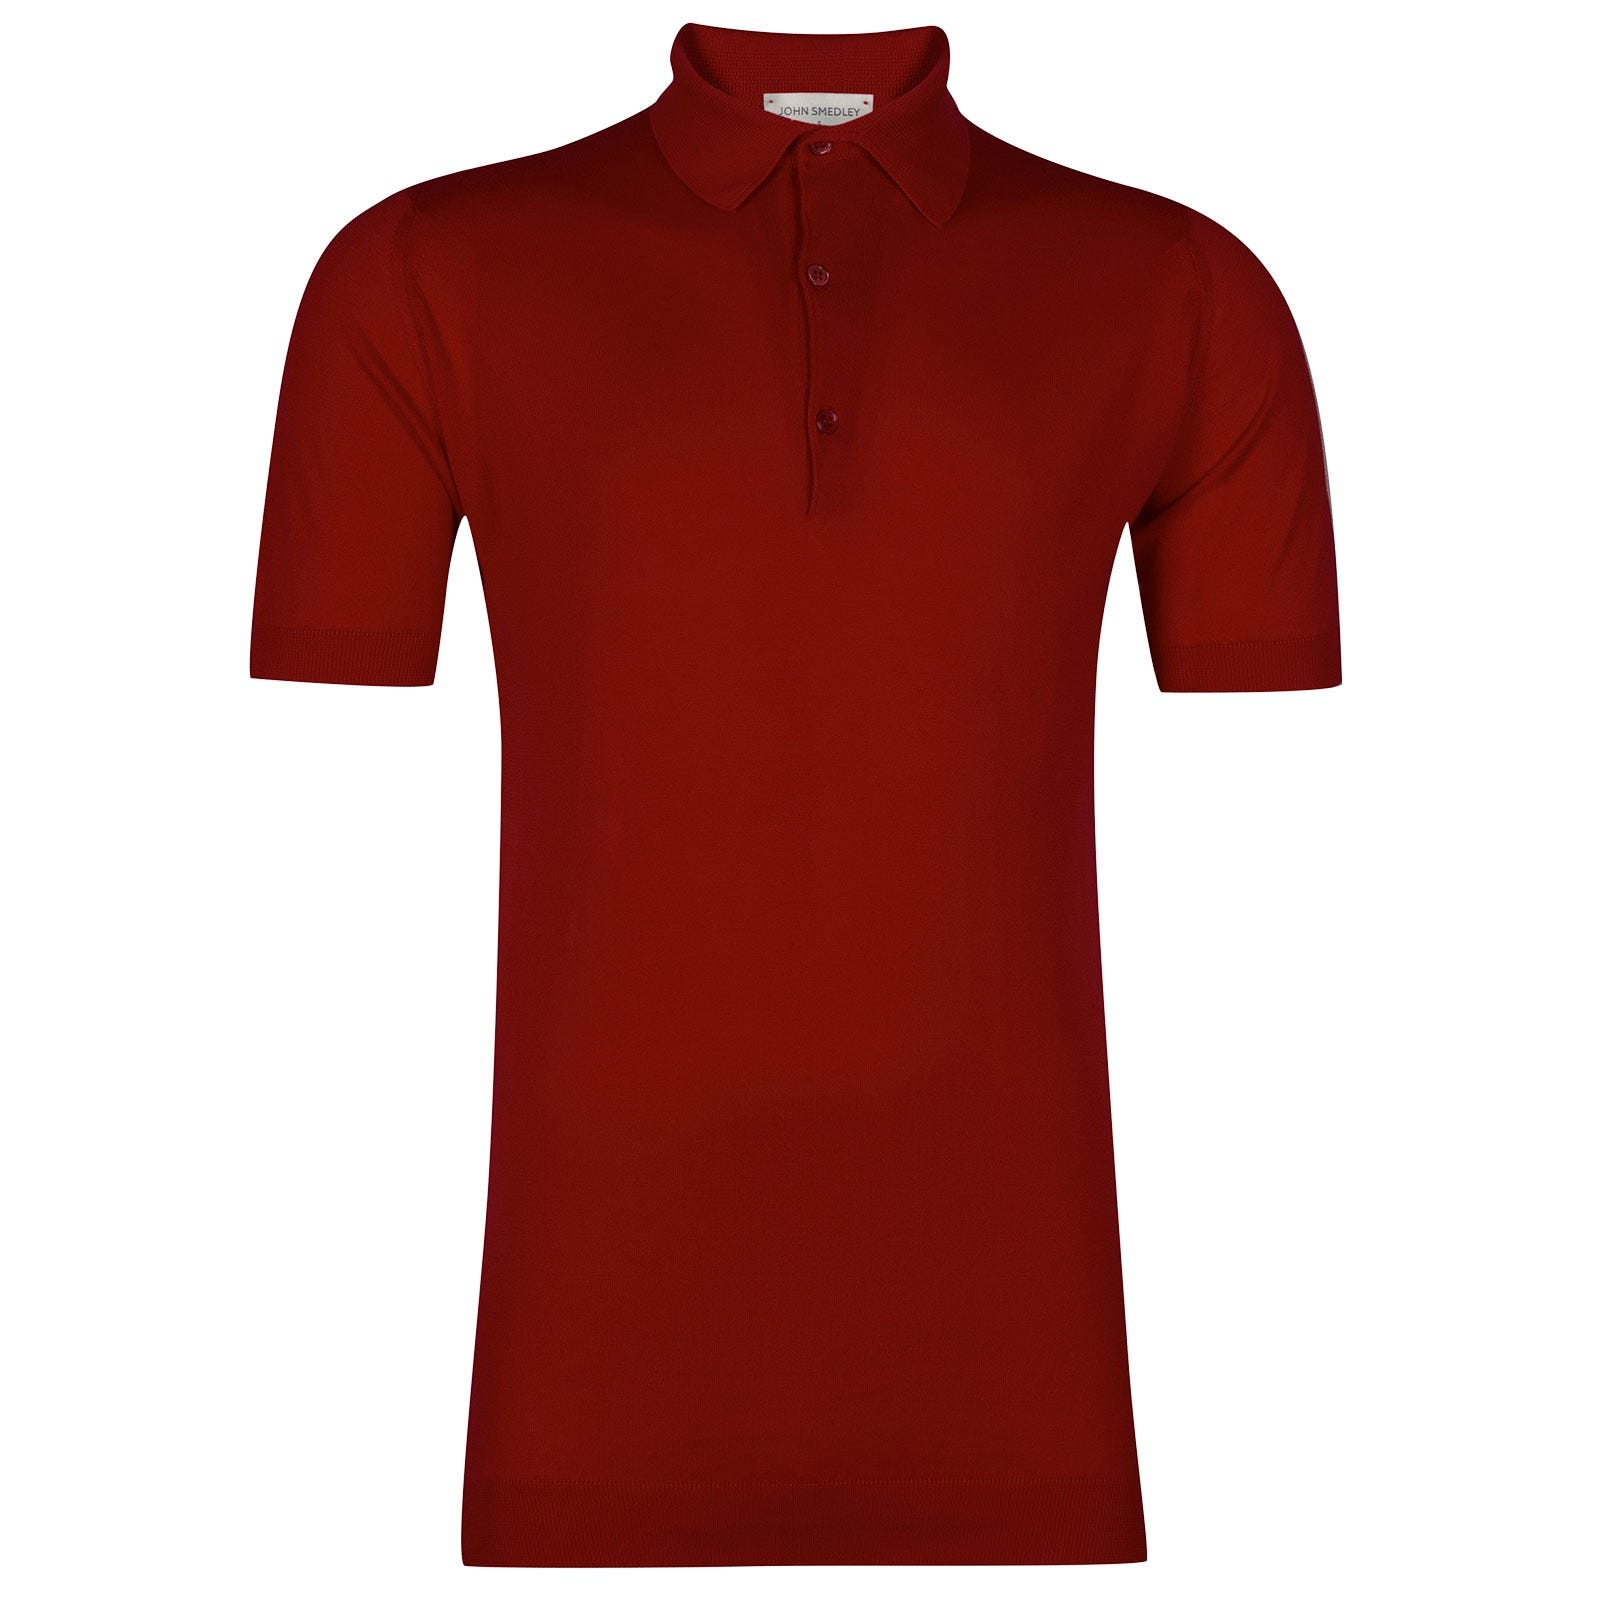 John Smedley Adrian Sea Island Cotton Shirt in Thermal Red-XXL